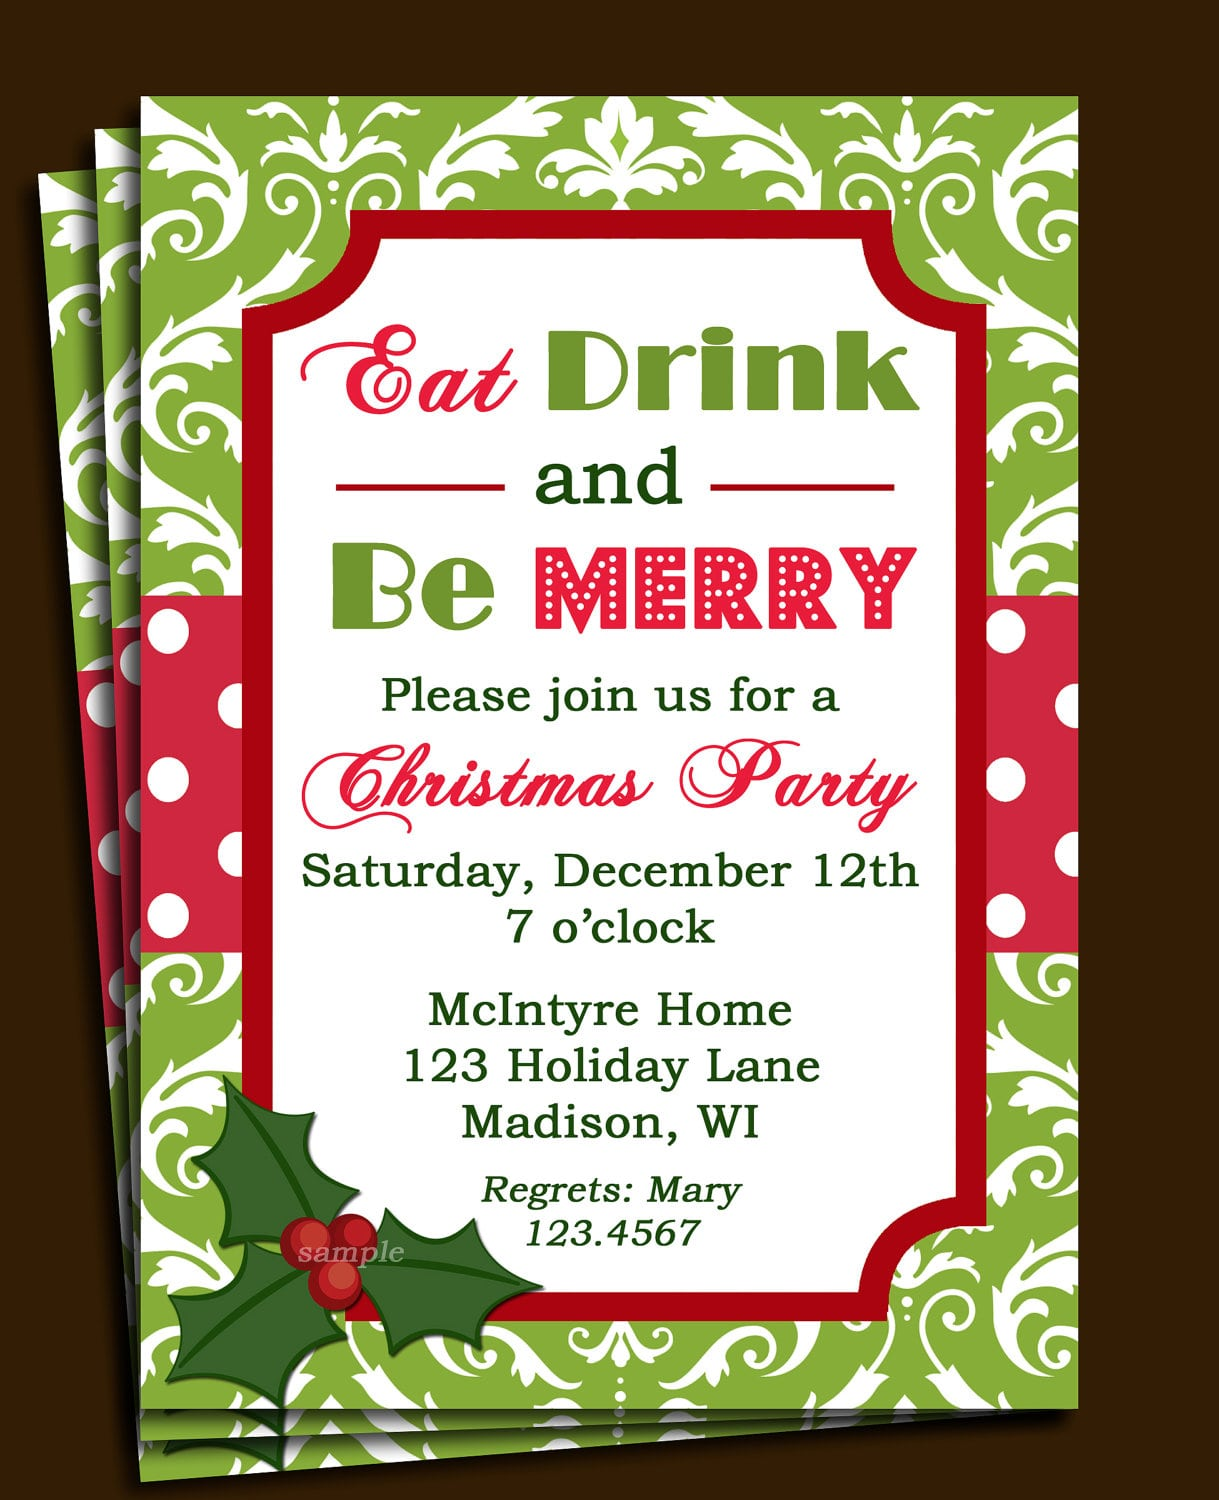 Best Christmas Party Invitations Sample Best Christmas Party